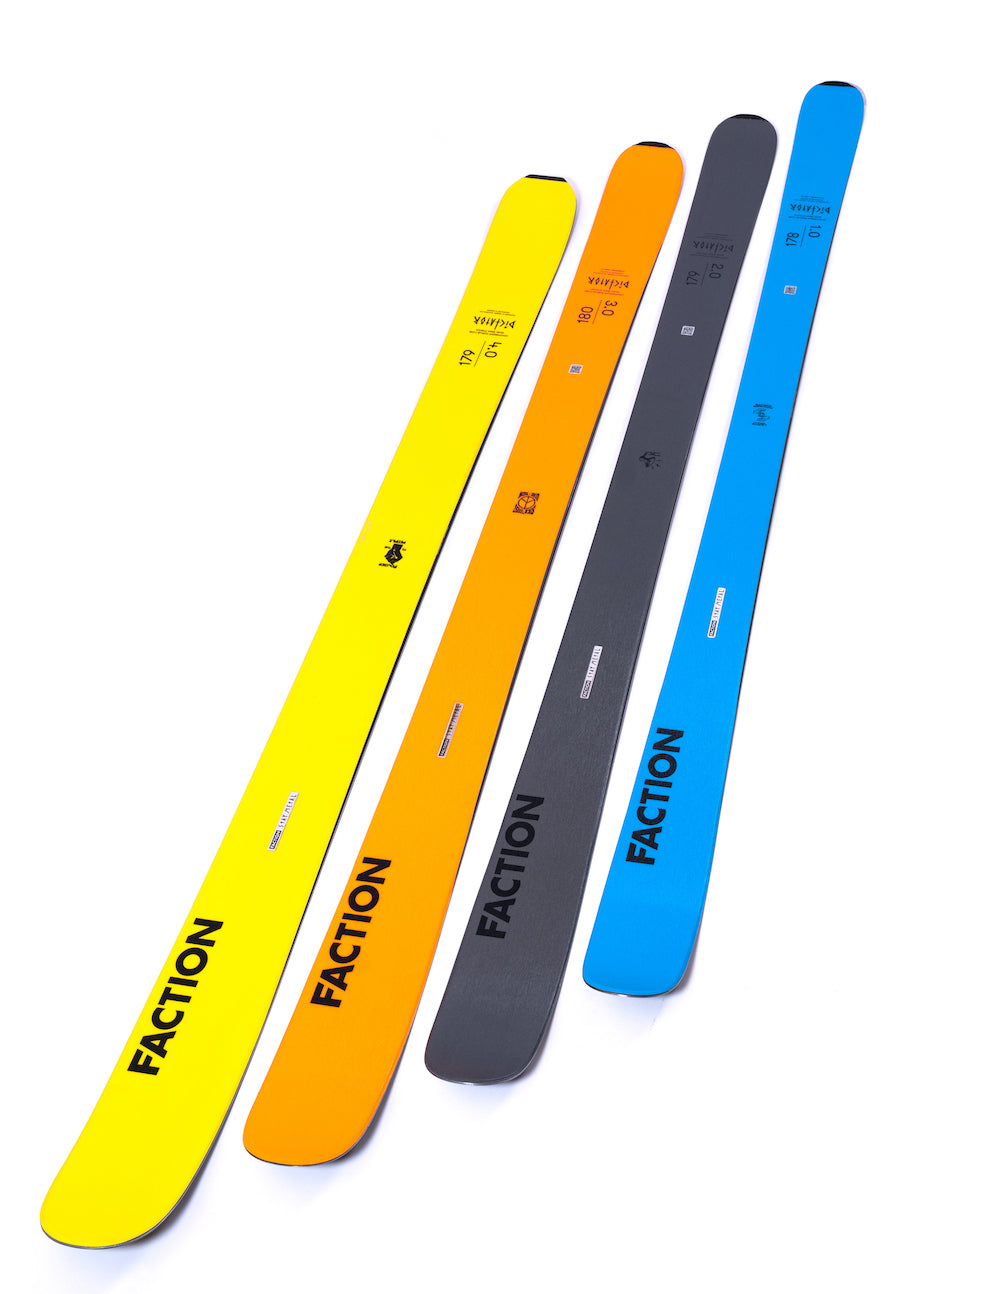 2021 Dictator Series Skis